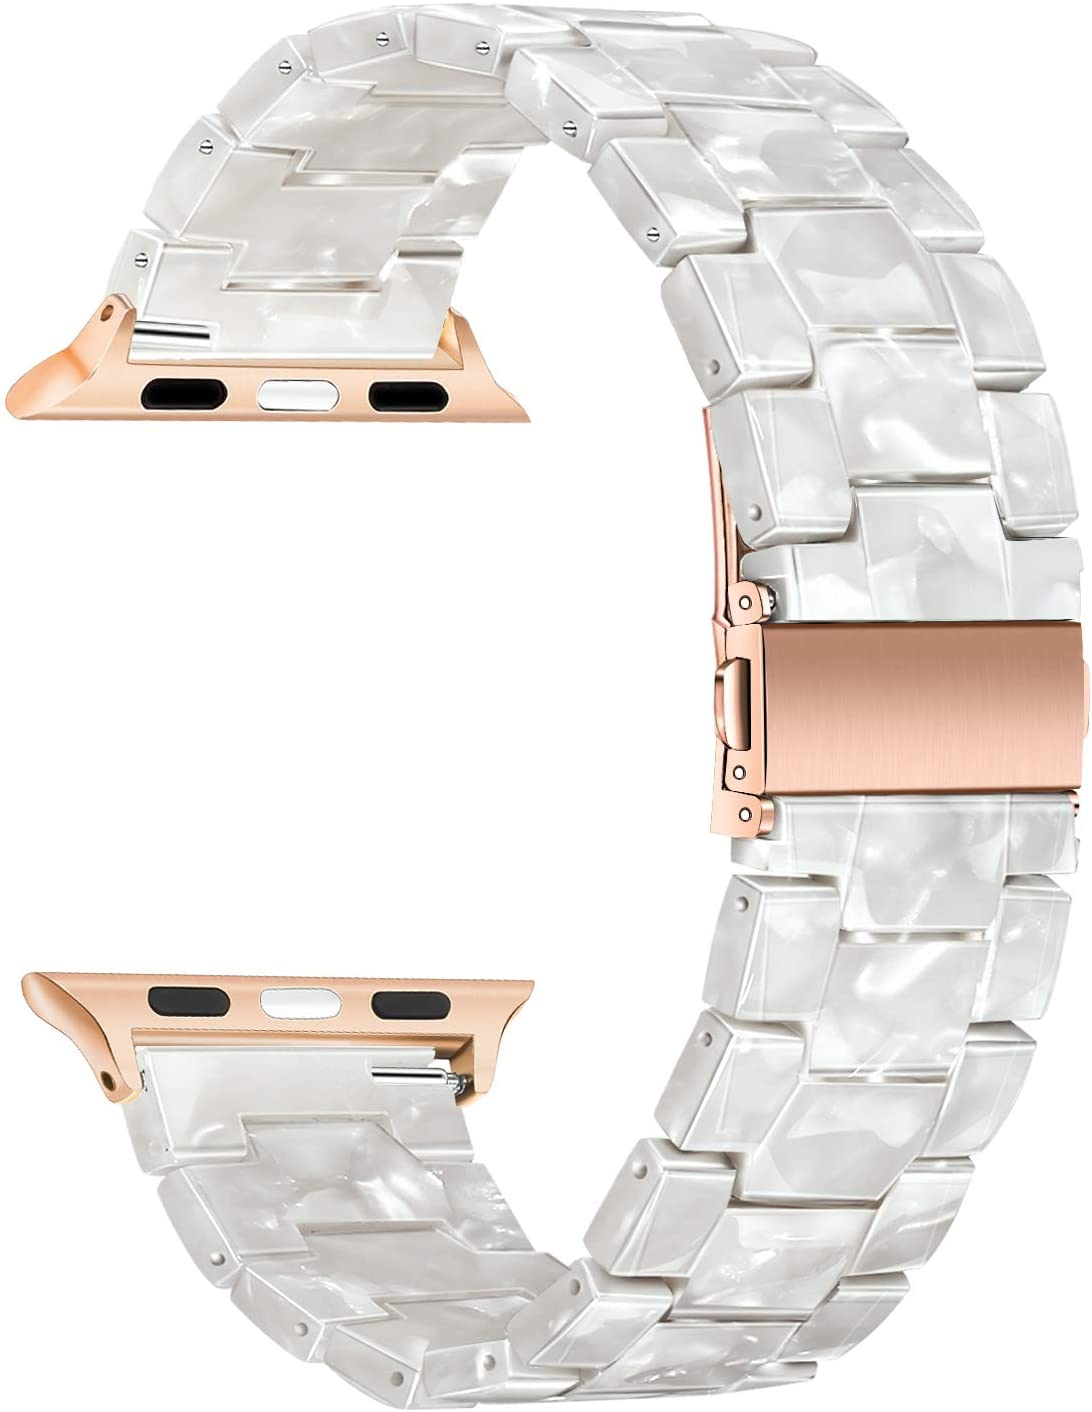 TRUMiRR Watchband Compatible for 38mm 40mm Apple Watch Women, Fashion Resin Watchband Rose Gold Stainless Steel Buckle Strap Bracelet for iWatch SE Apple Watch Series 6 5 4 3 2 1 All Models